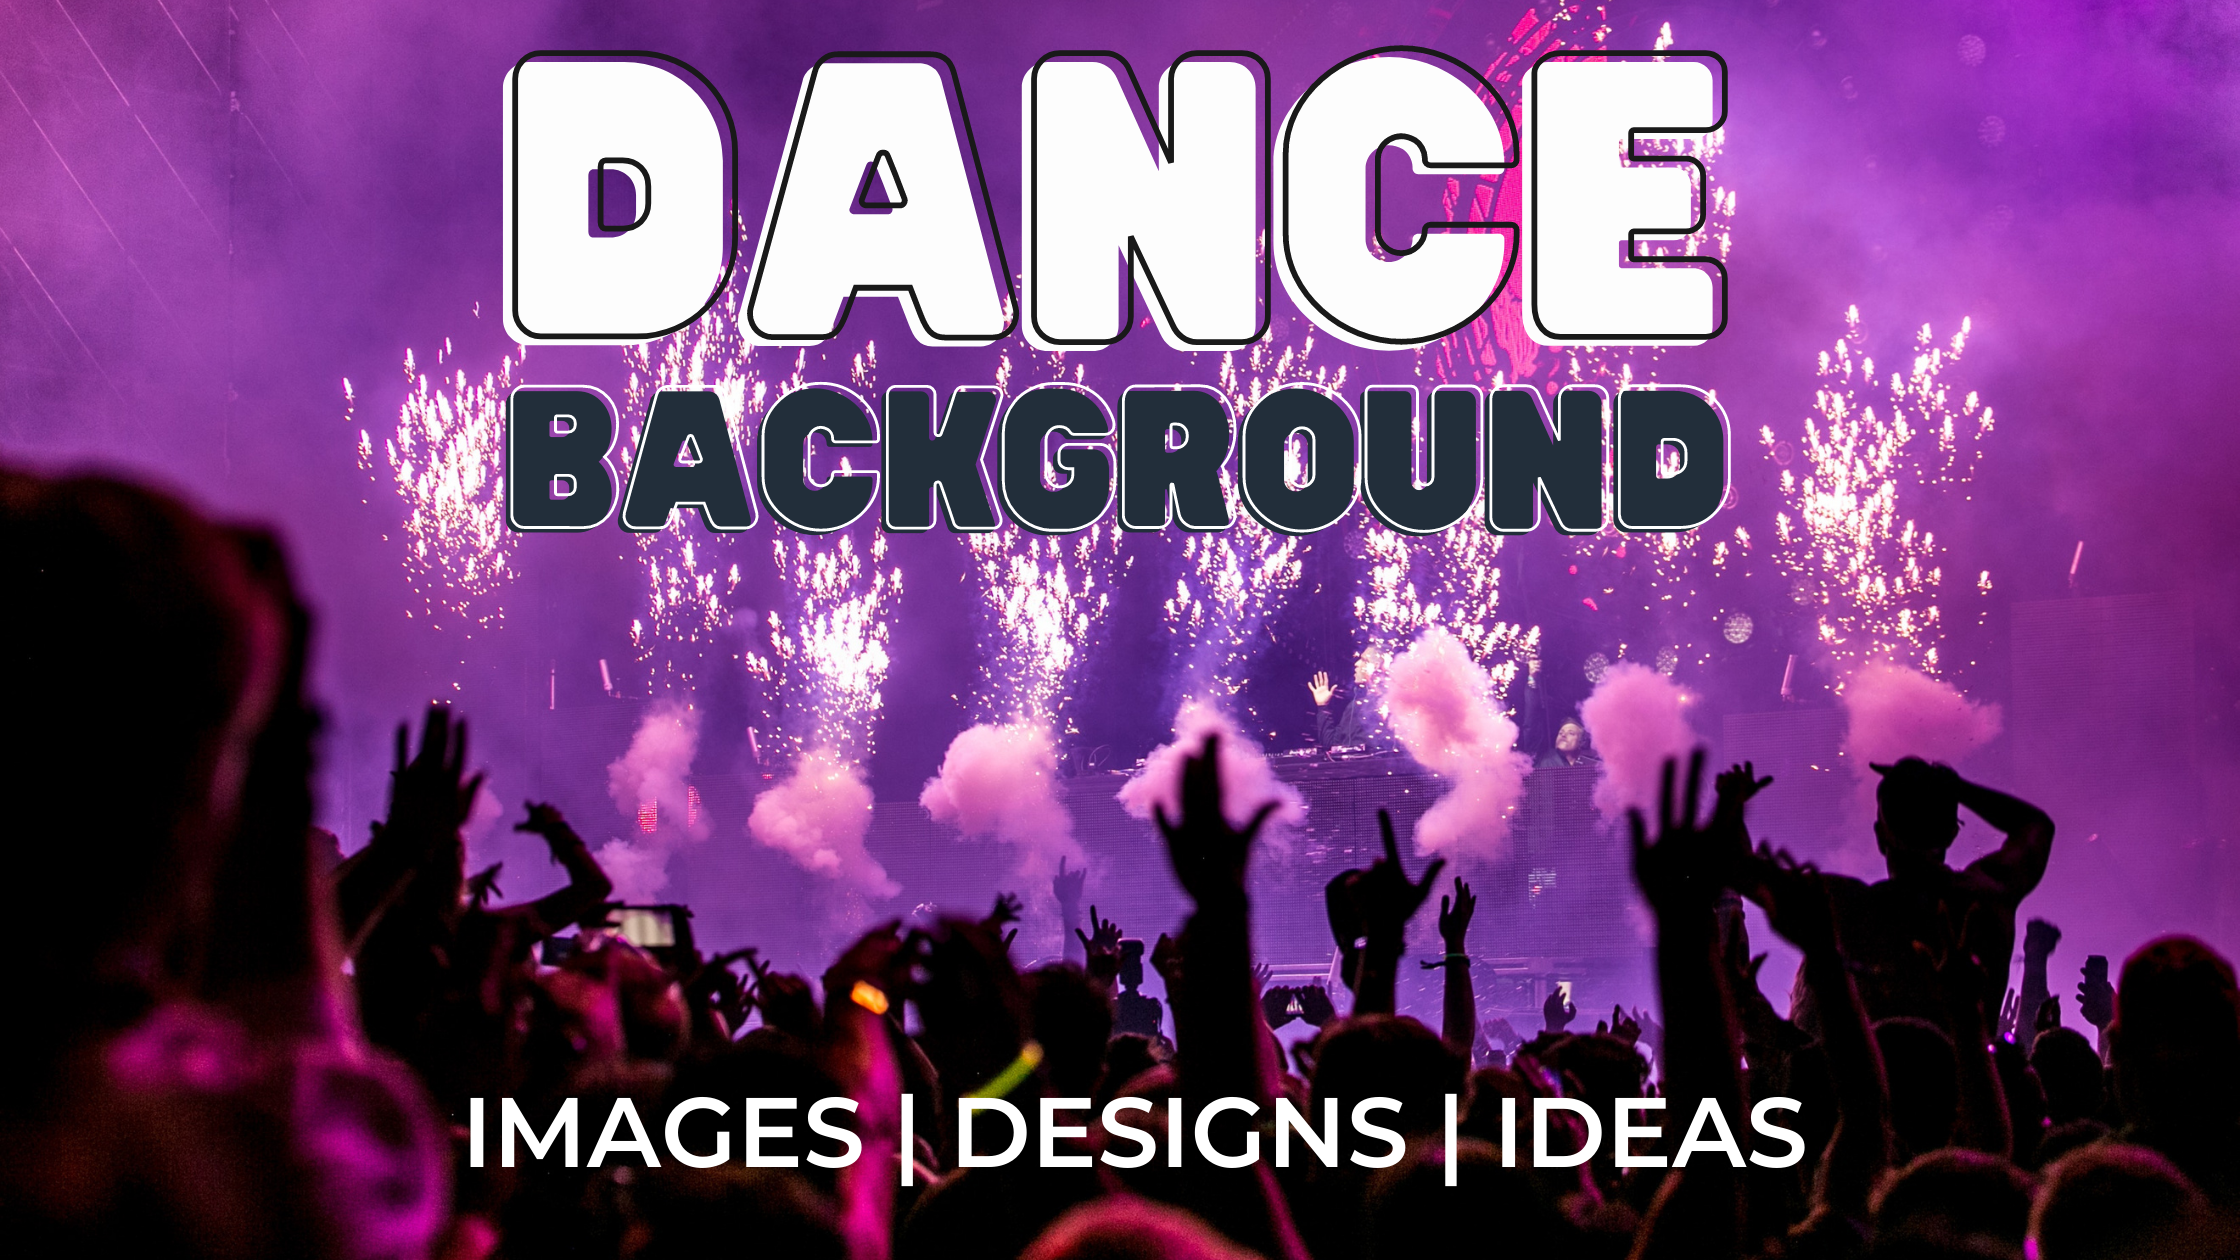 Dance Background: PNG Images, Designs, Colours, Lights, And Ideas.